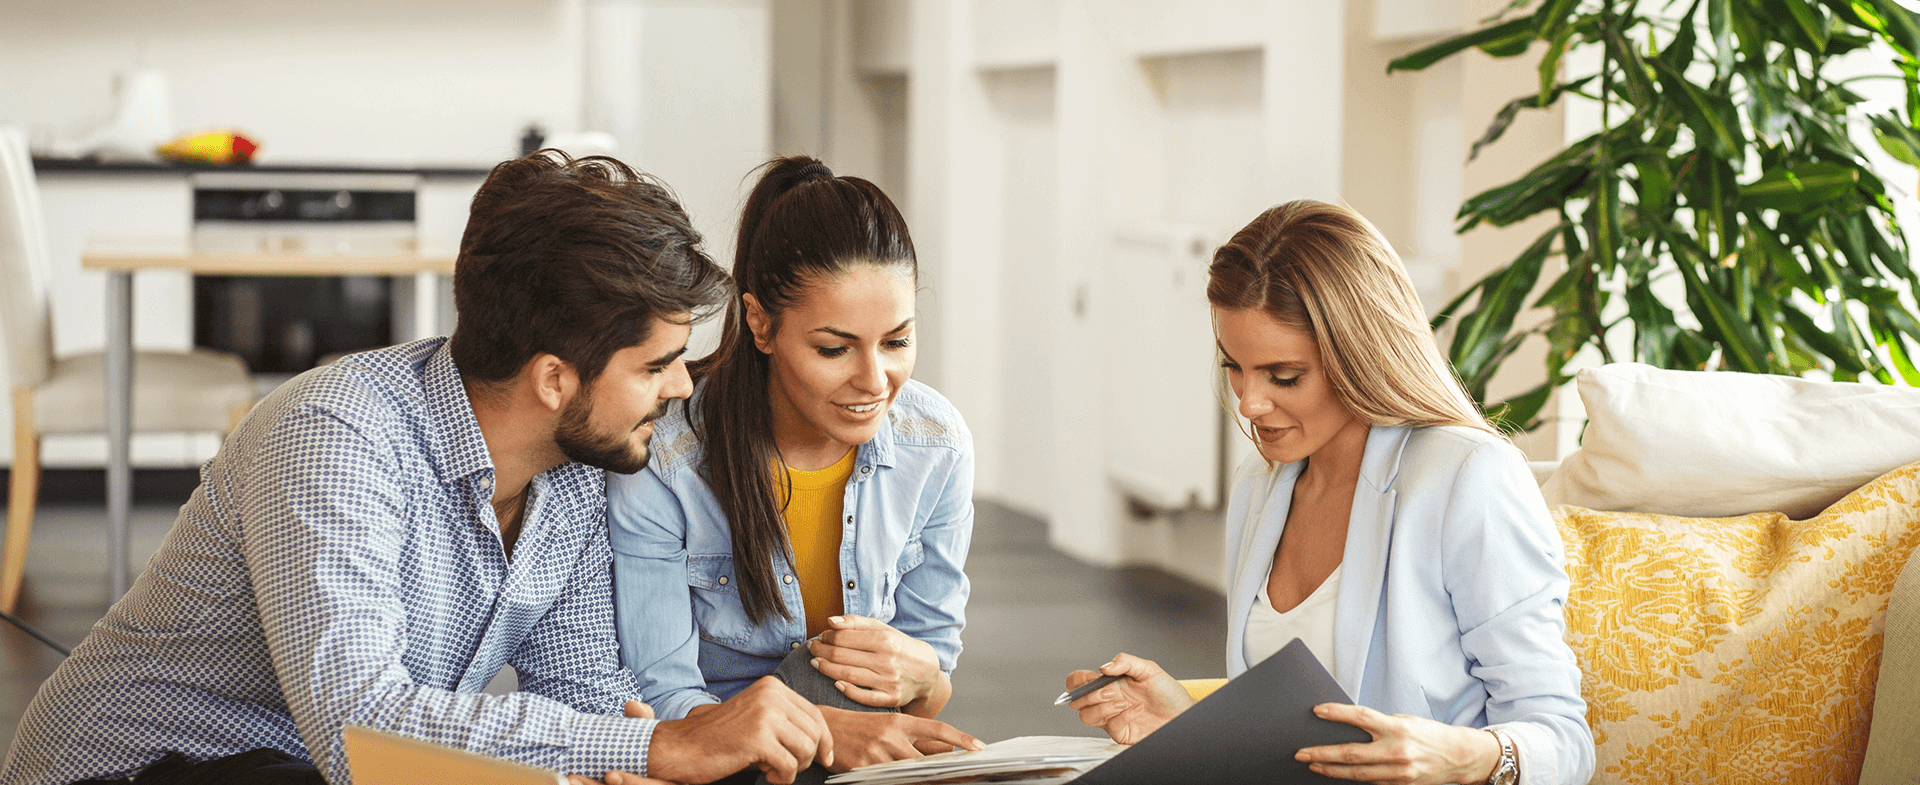 Property investing in New Plymouth and Taranaki can be easy when you partner with our team of rental property managers here at McDonald Real Estate